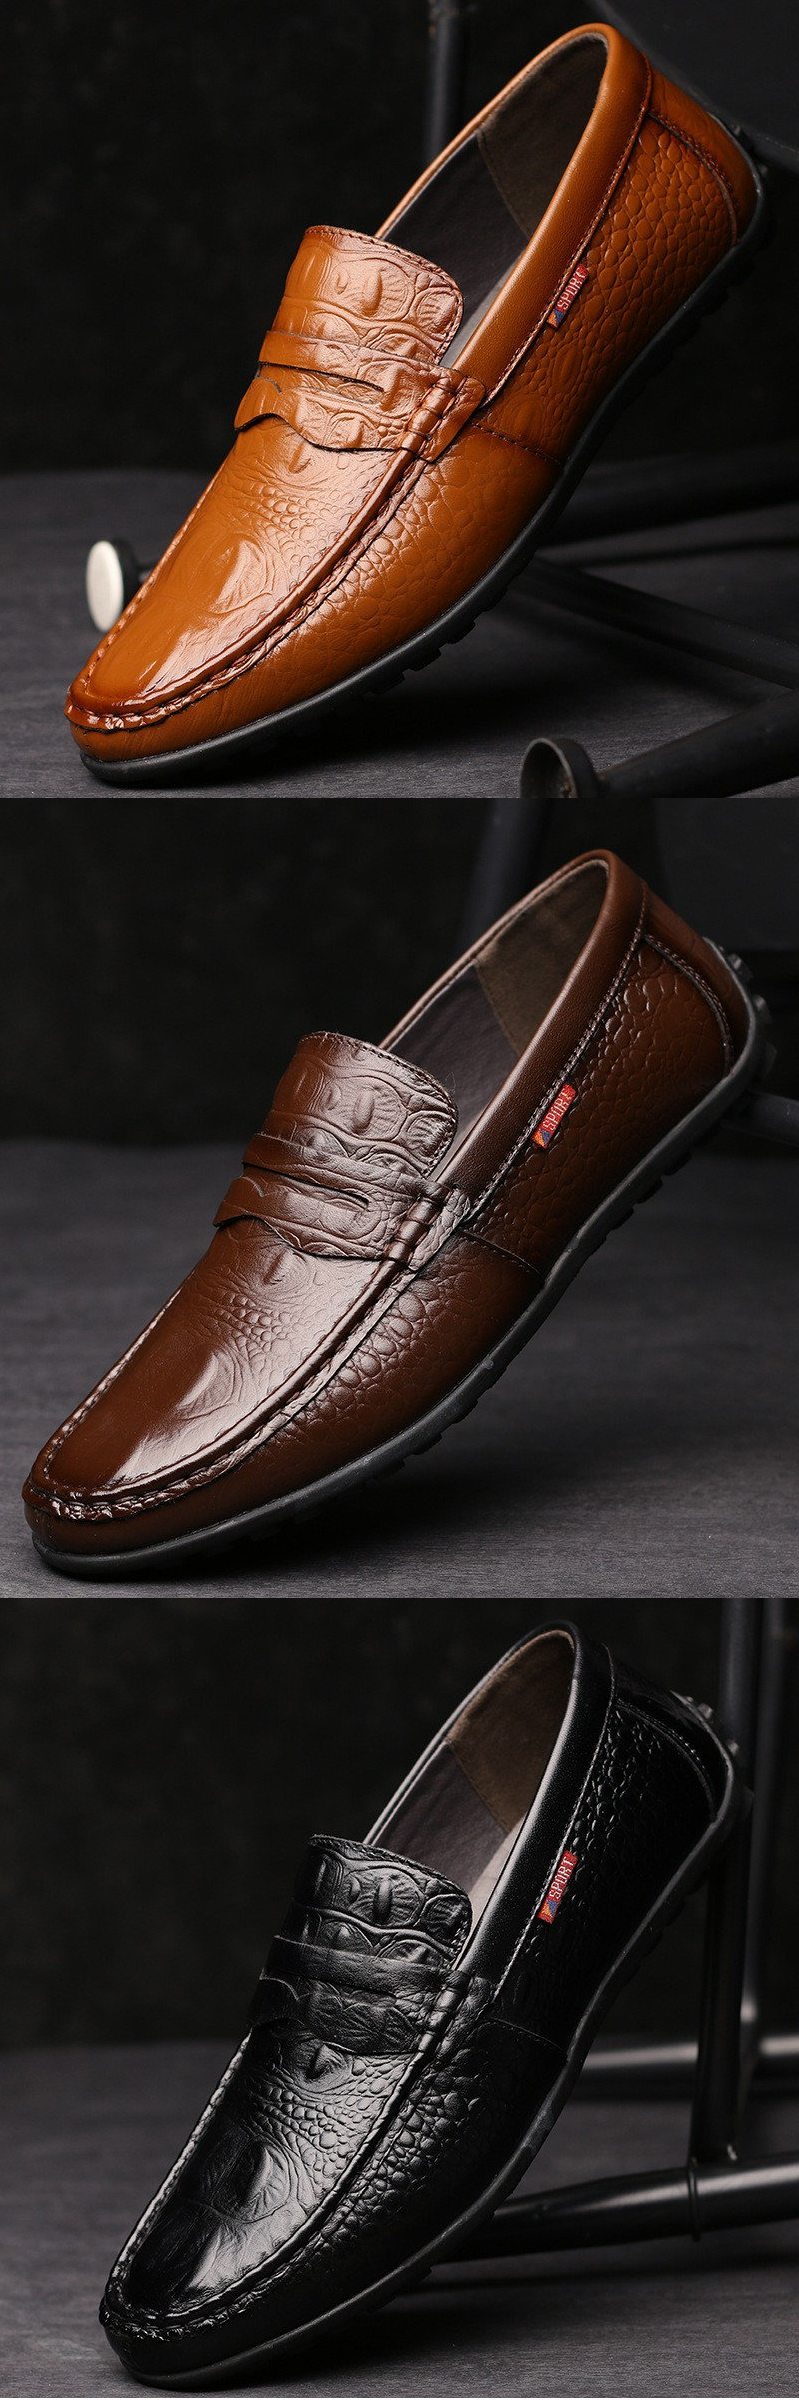 Surprising Day Fashion casual leather shoes The British fashion men's shoes Doug shoes Driving shoes